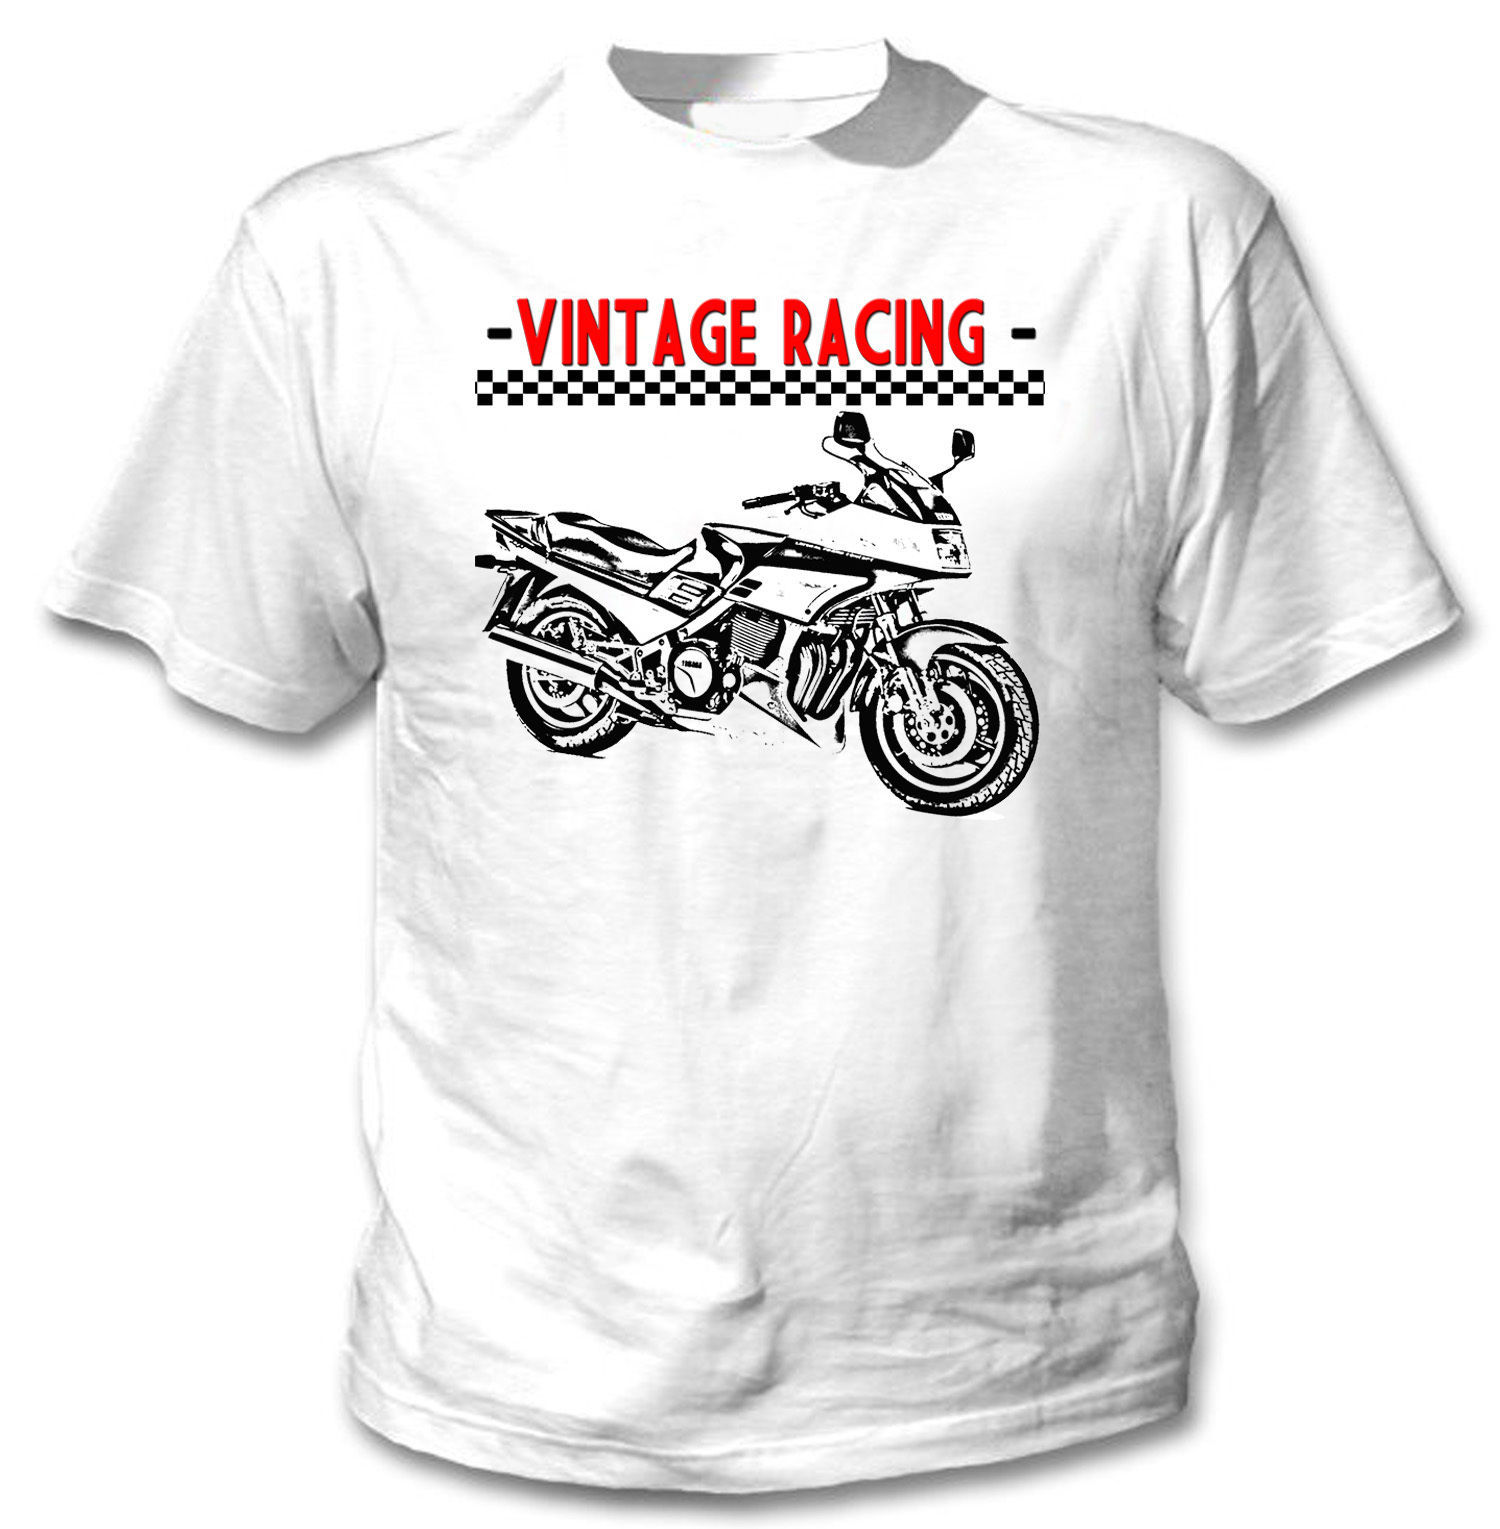 Primary image for JAPANESE VINTAGE RACING MOTORCYCLE 1200-NEW AMAZING GRAPHIC TSHIRT- S-M-L-XL-XXL